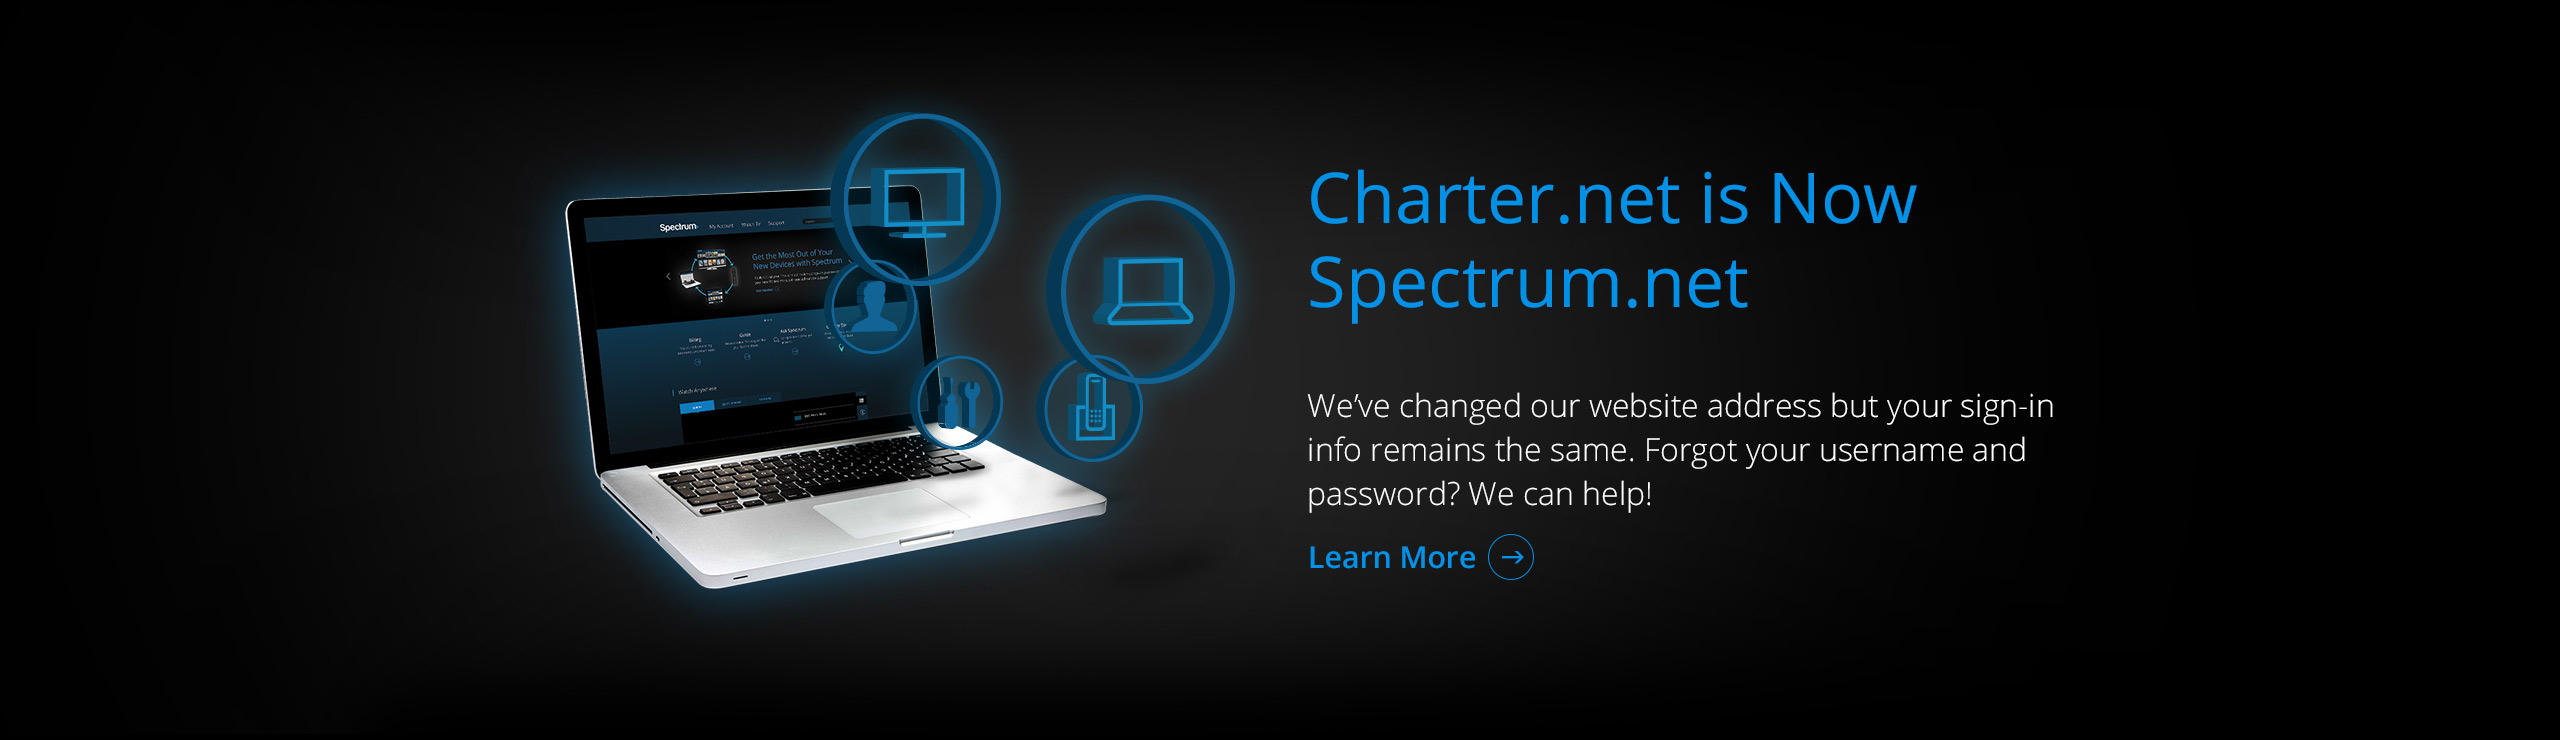 Spectrum.net Launch